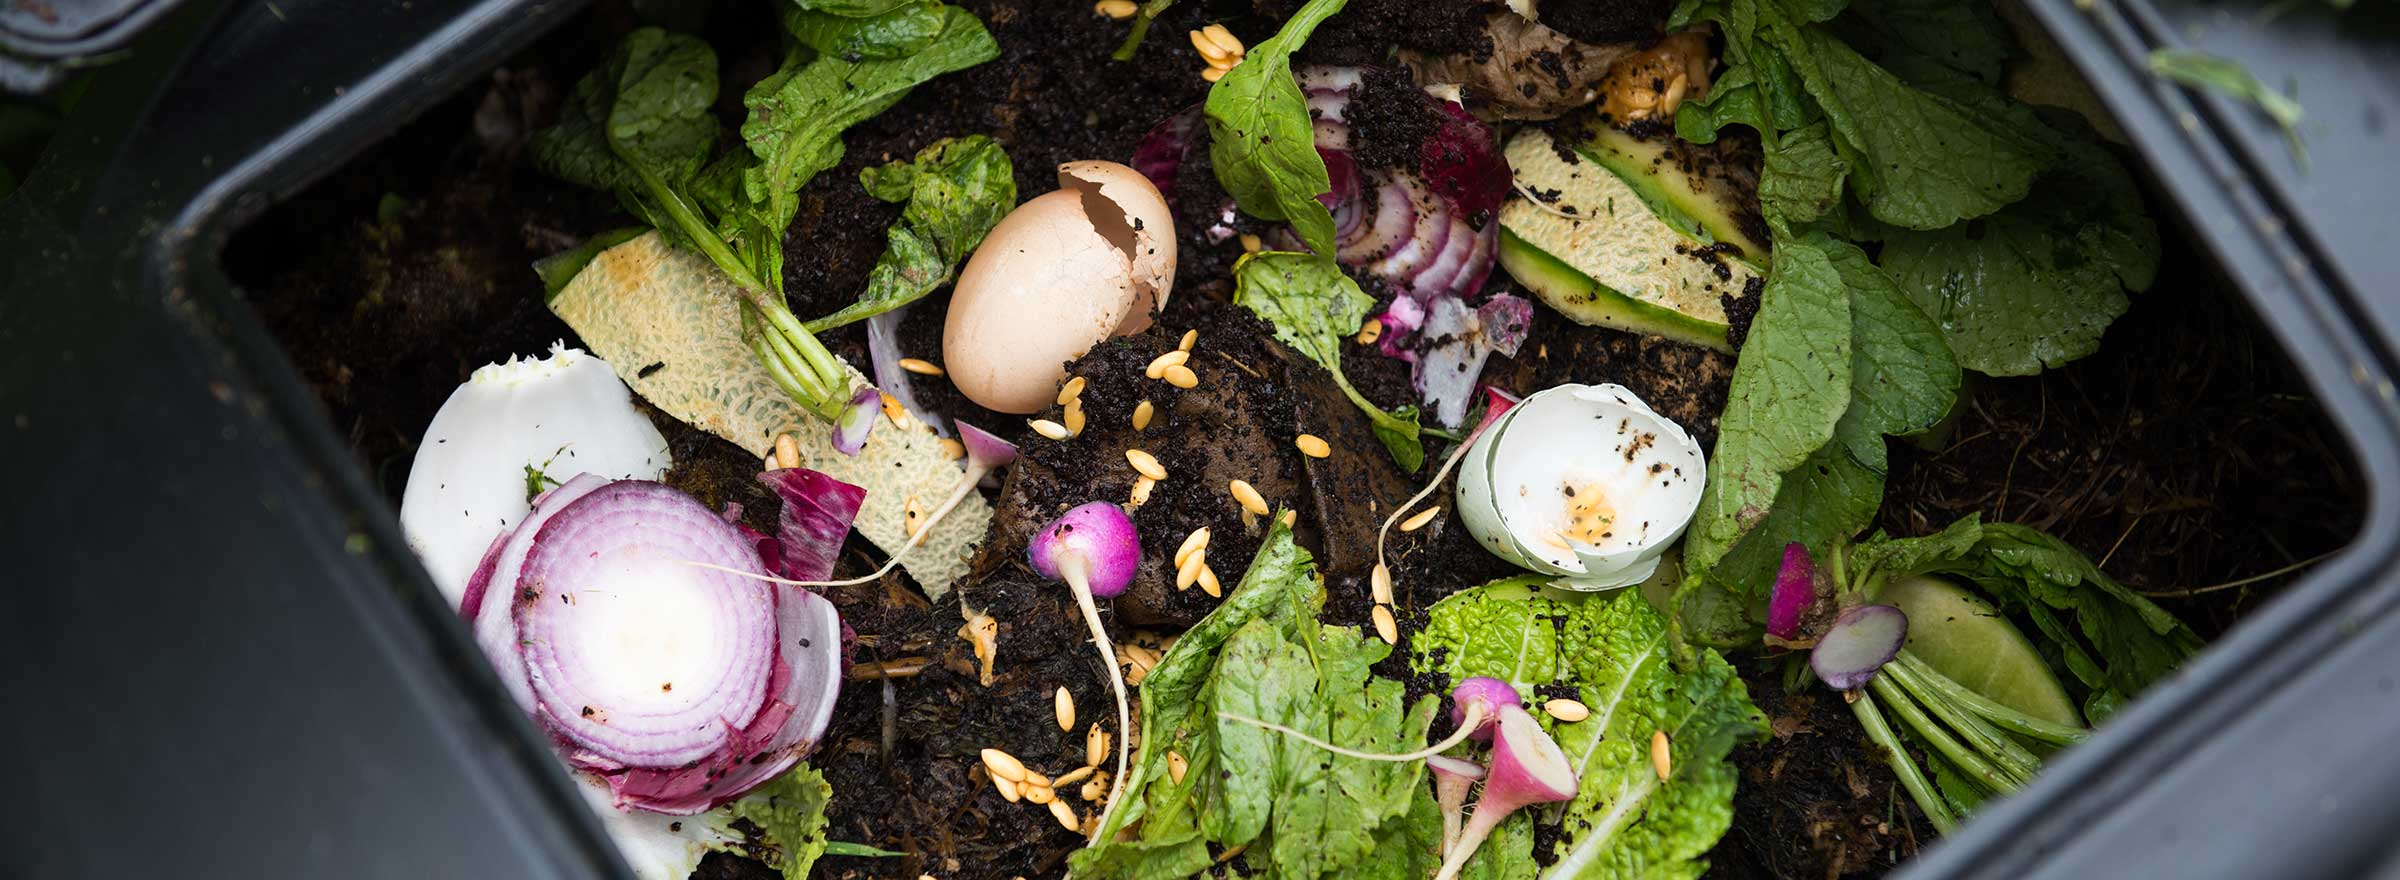 Composting for Restaurants: How and Why